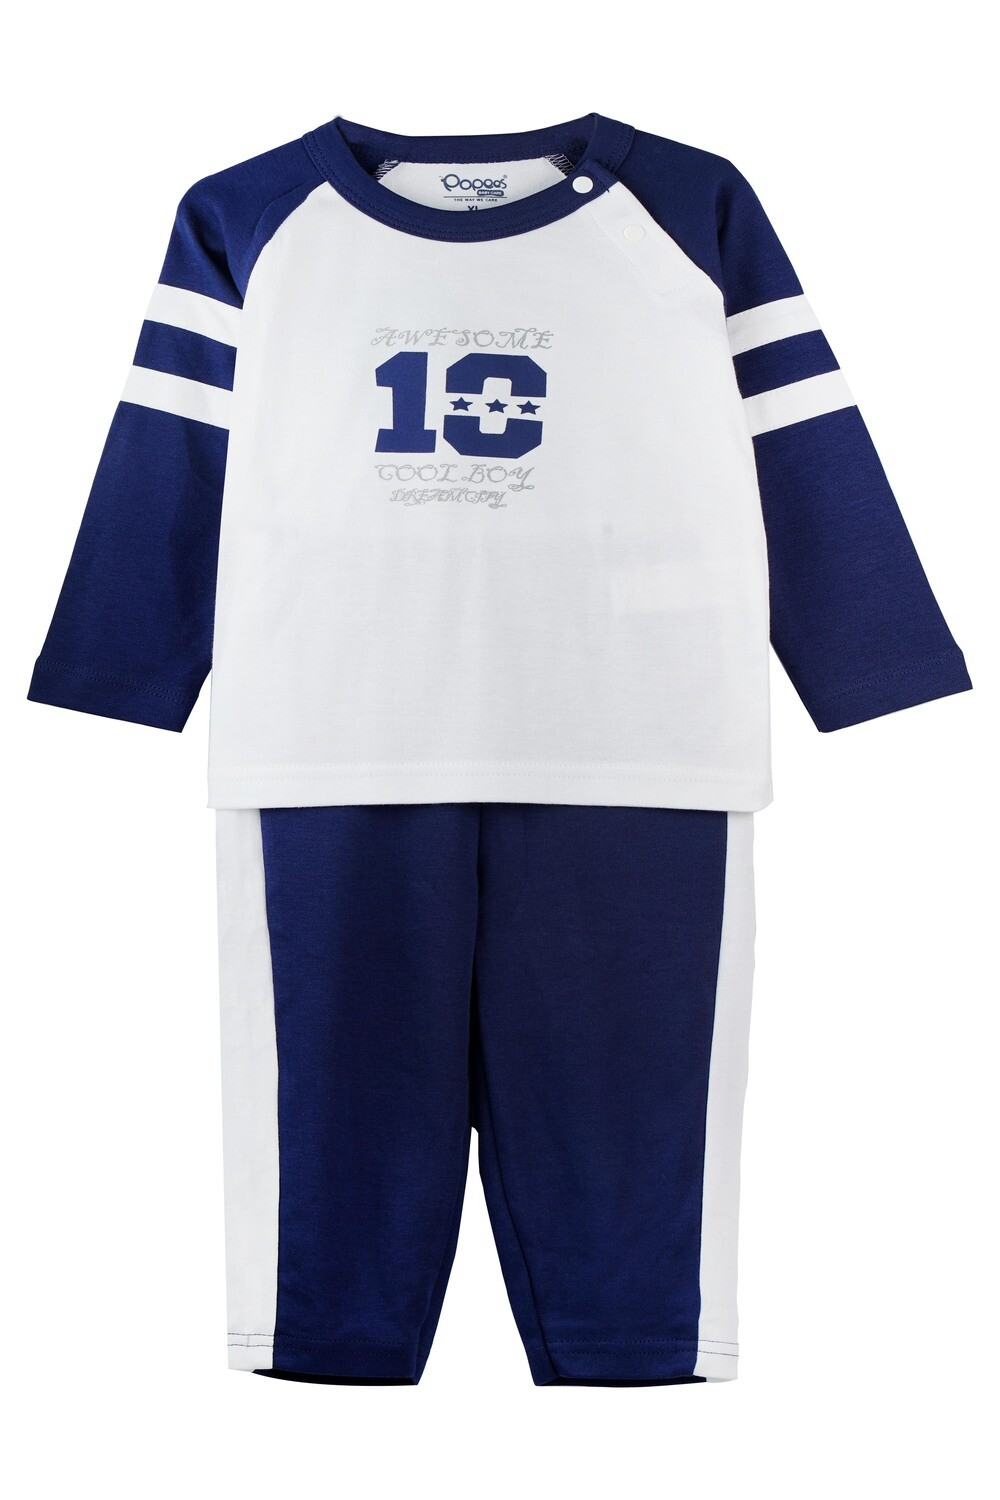 ELIGE NAVY BLUE Full Sleeve Top and Pant for Baby Boys